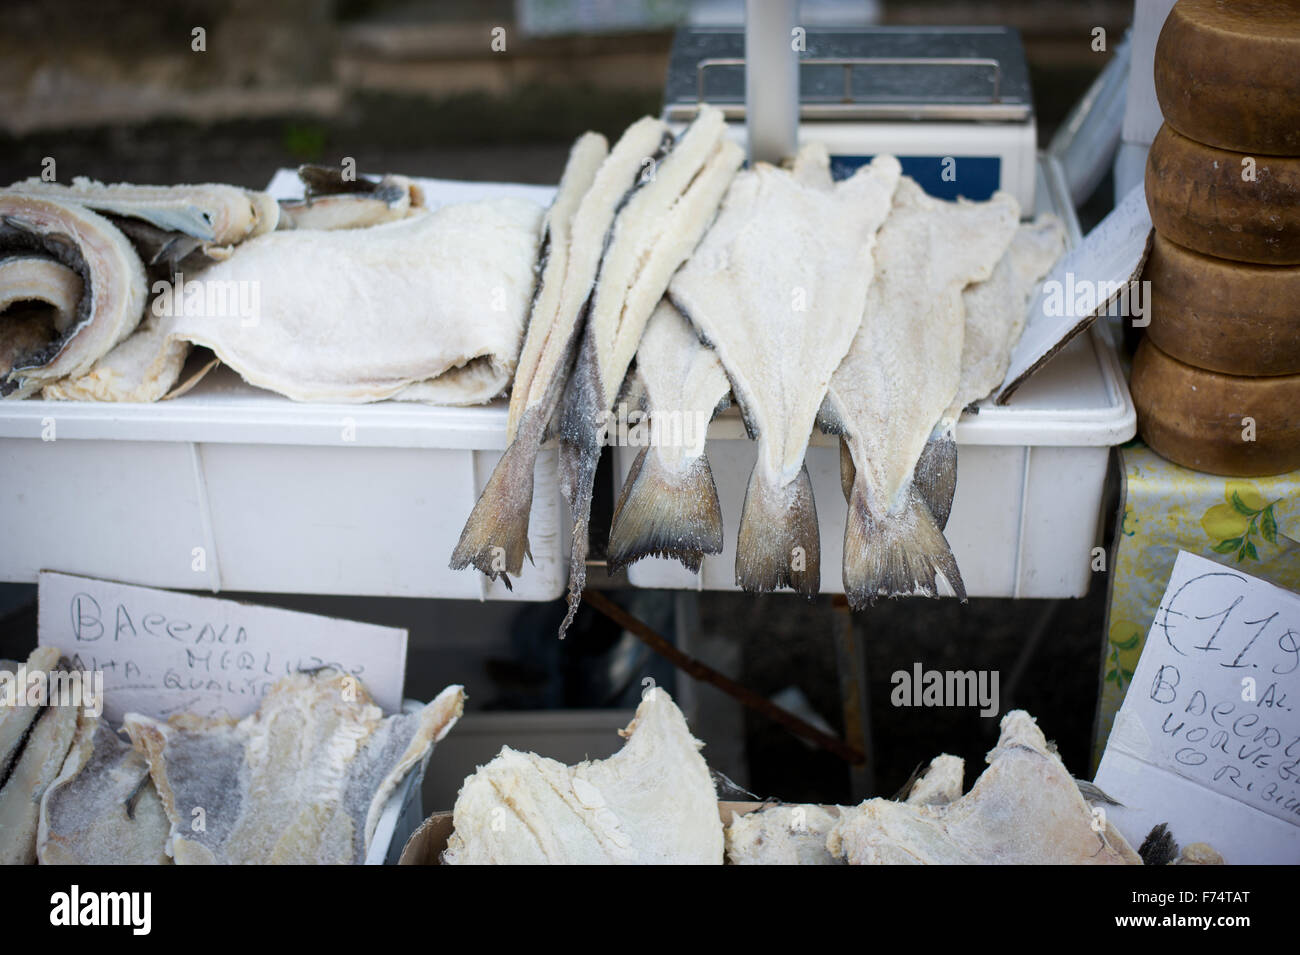 Salted fish for sale in italian market stock photo for Stock fish for sale